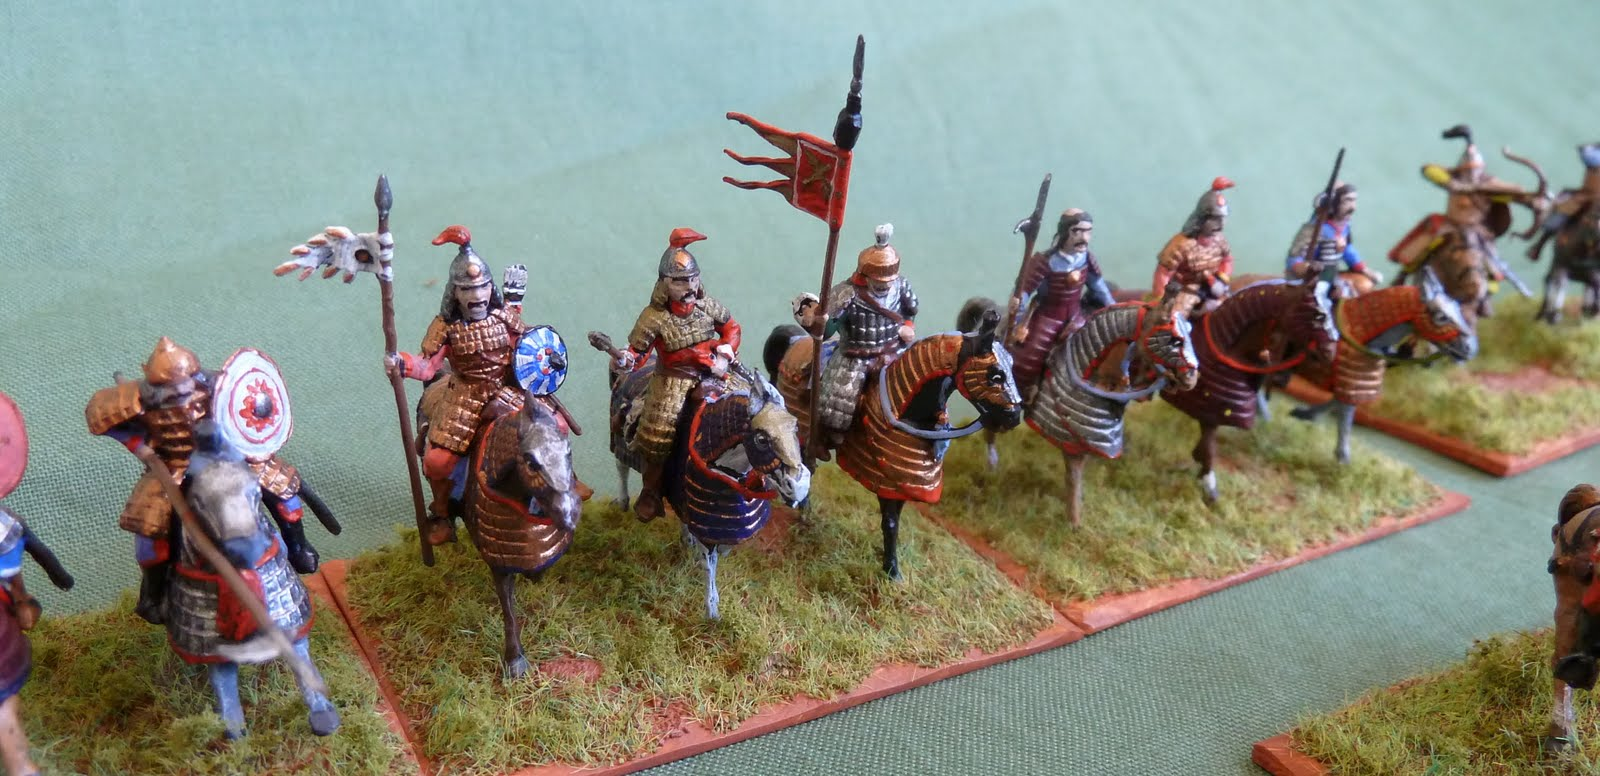 Painted Dba Armies For Sale